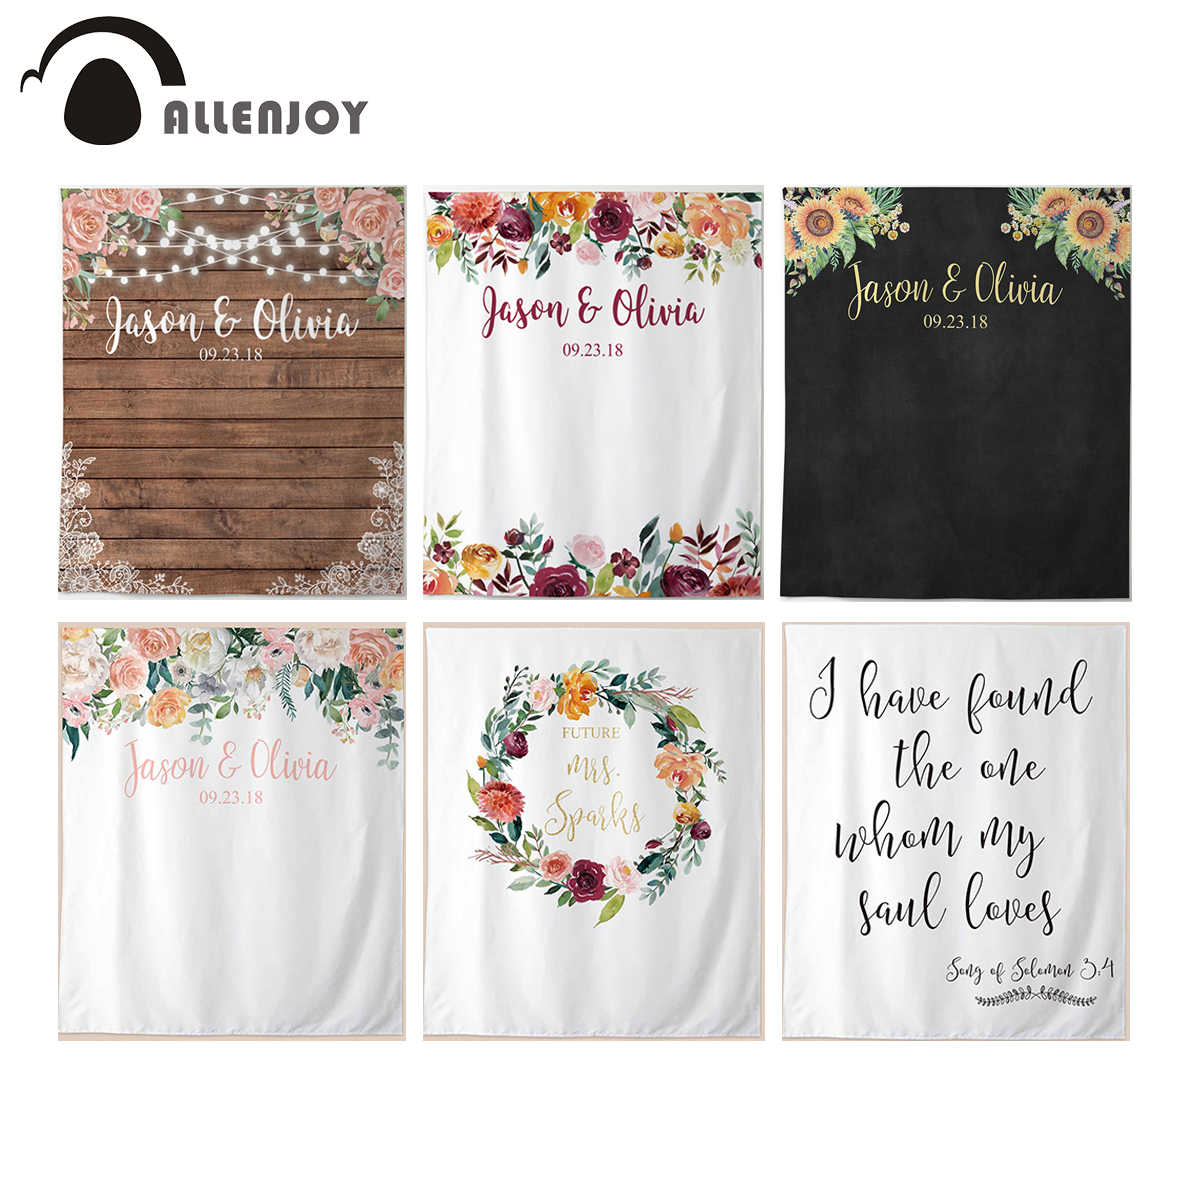 Allenjoy Wedding Photocall Marriage Photographic Wall Banner Flowers Wooden Floors Blackboard Party Backdrop Valentine S Day Aliexpress